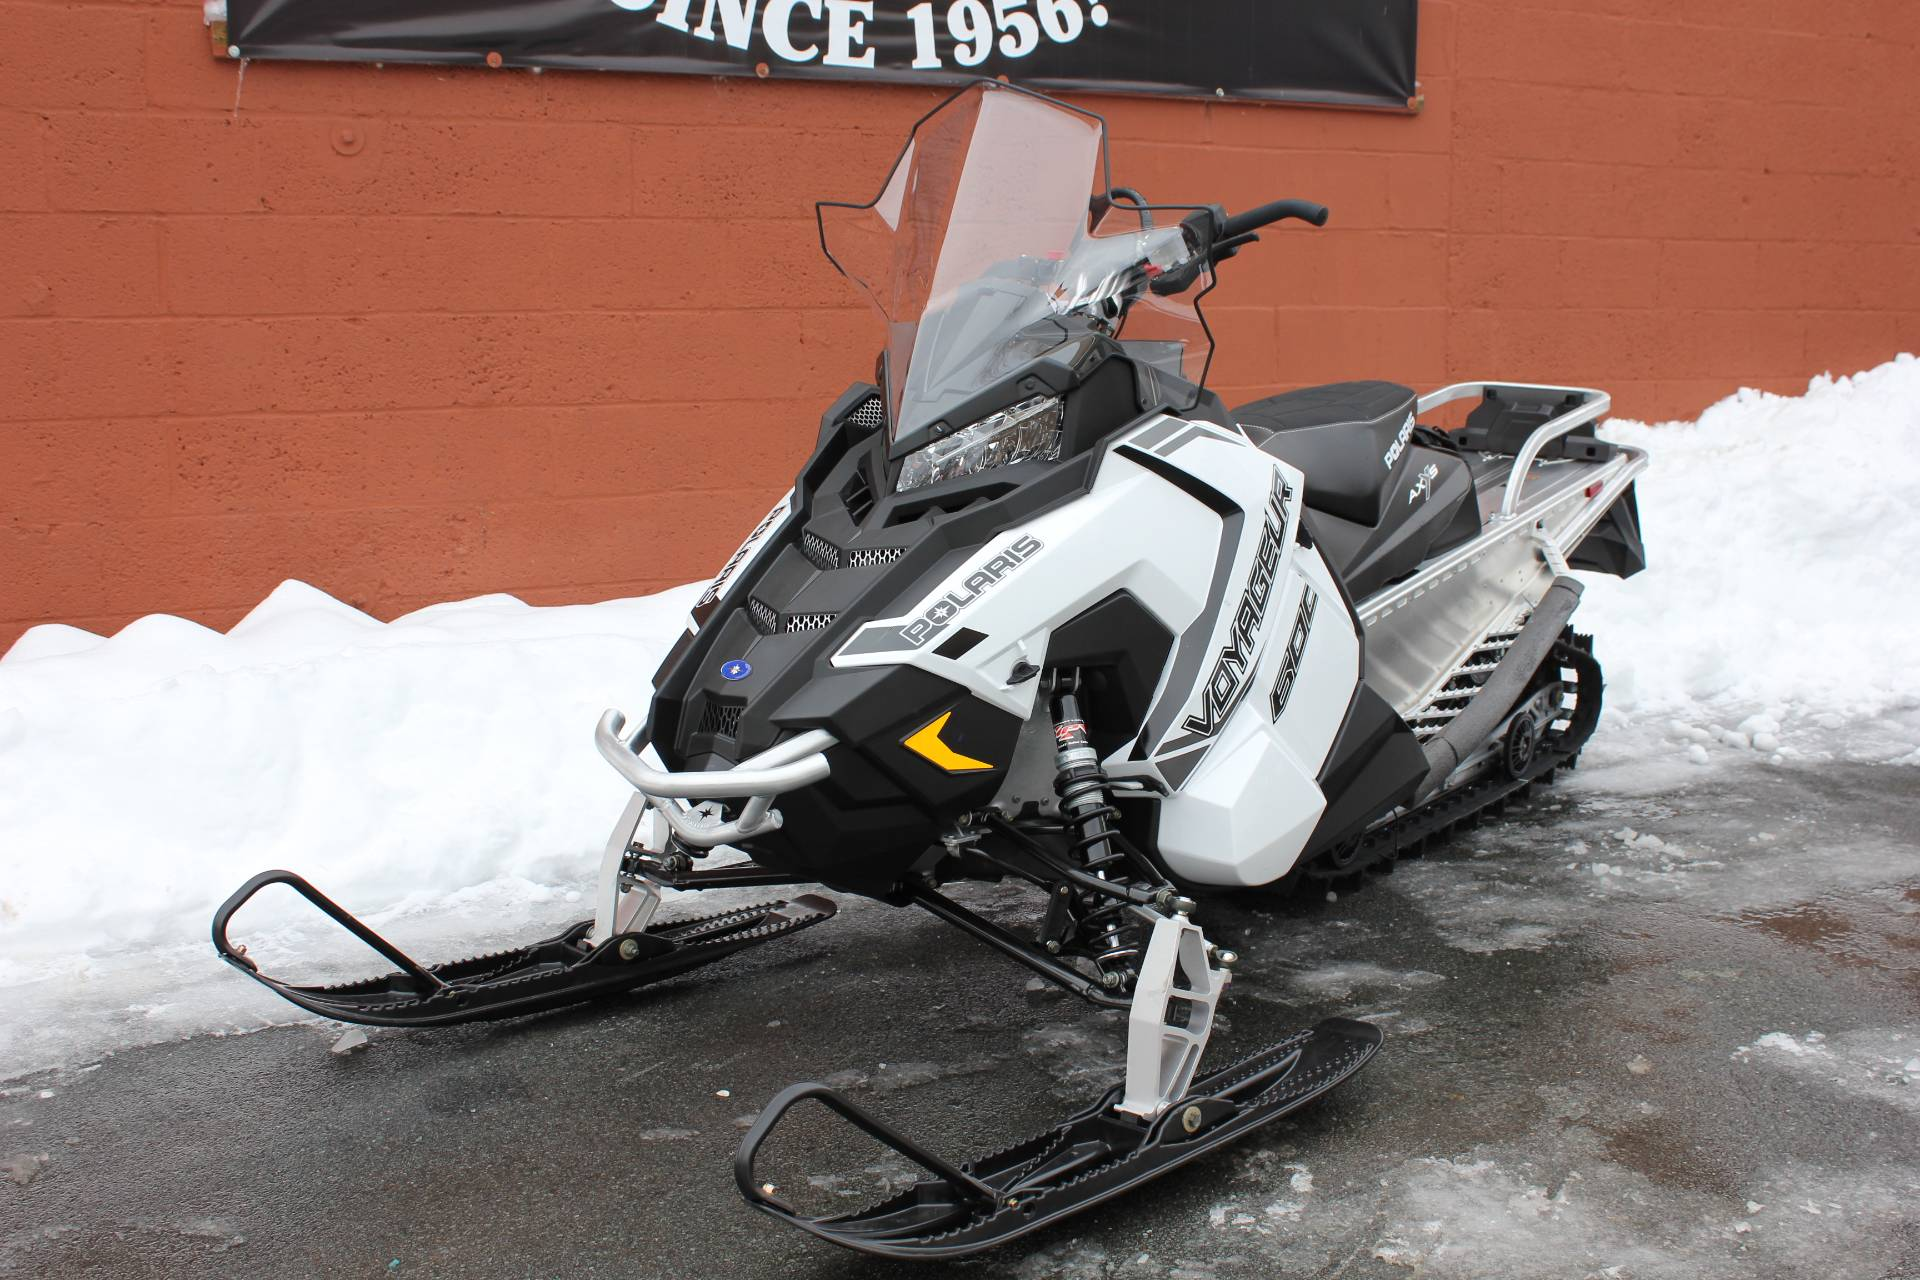 2020 Polaris 600 Voyageur 144 ES in Pittsfield, Massachusetts - Photo 2